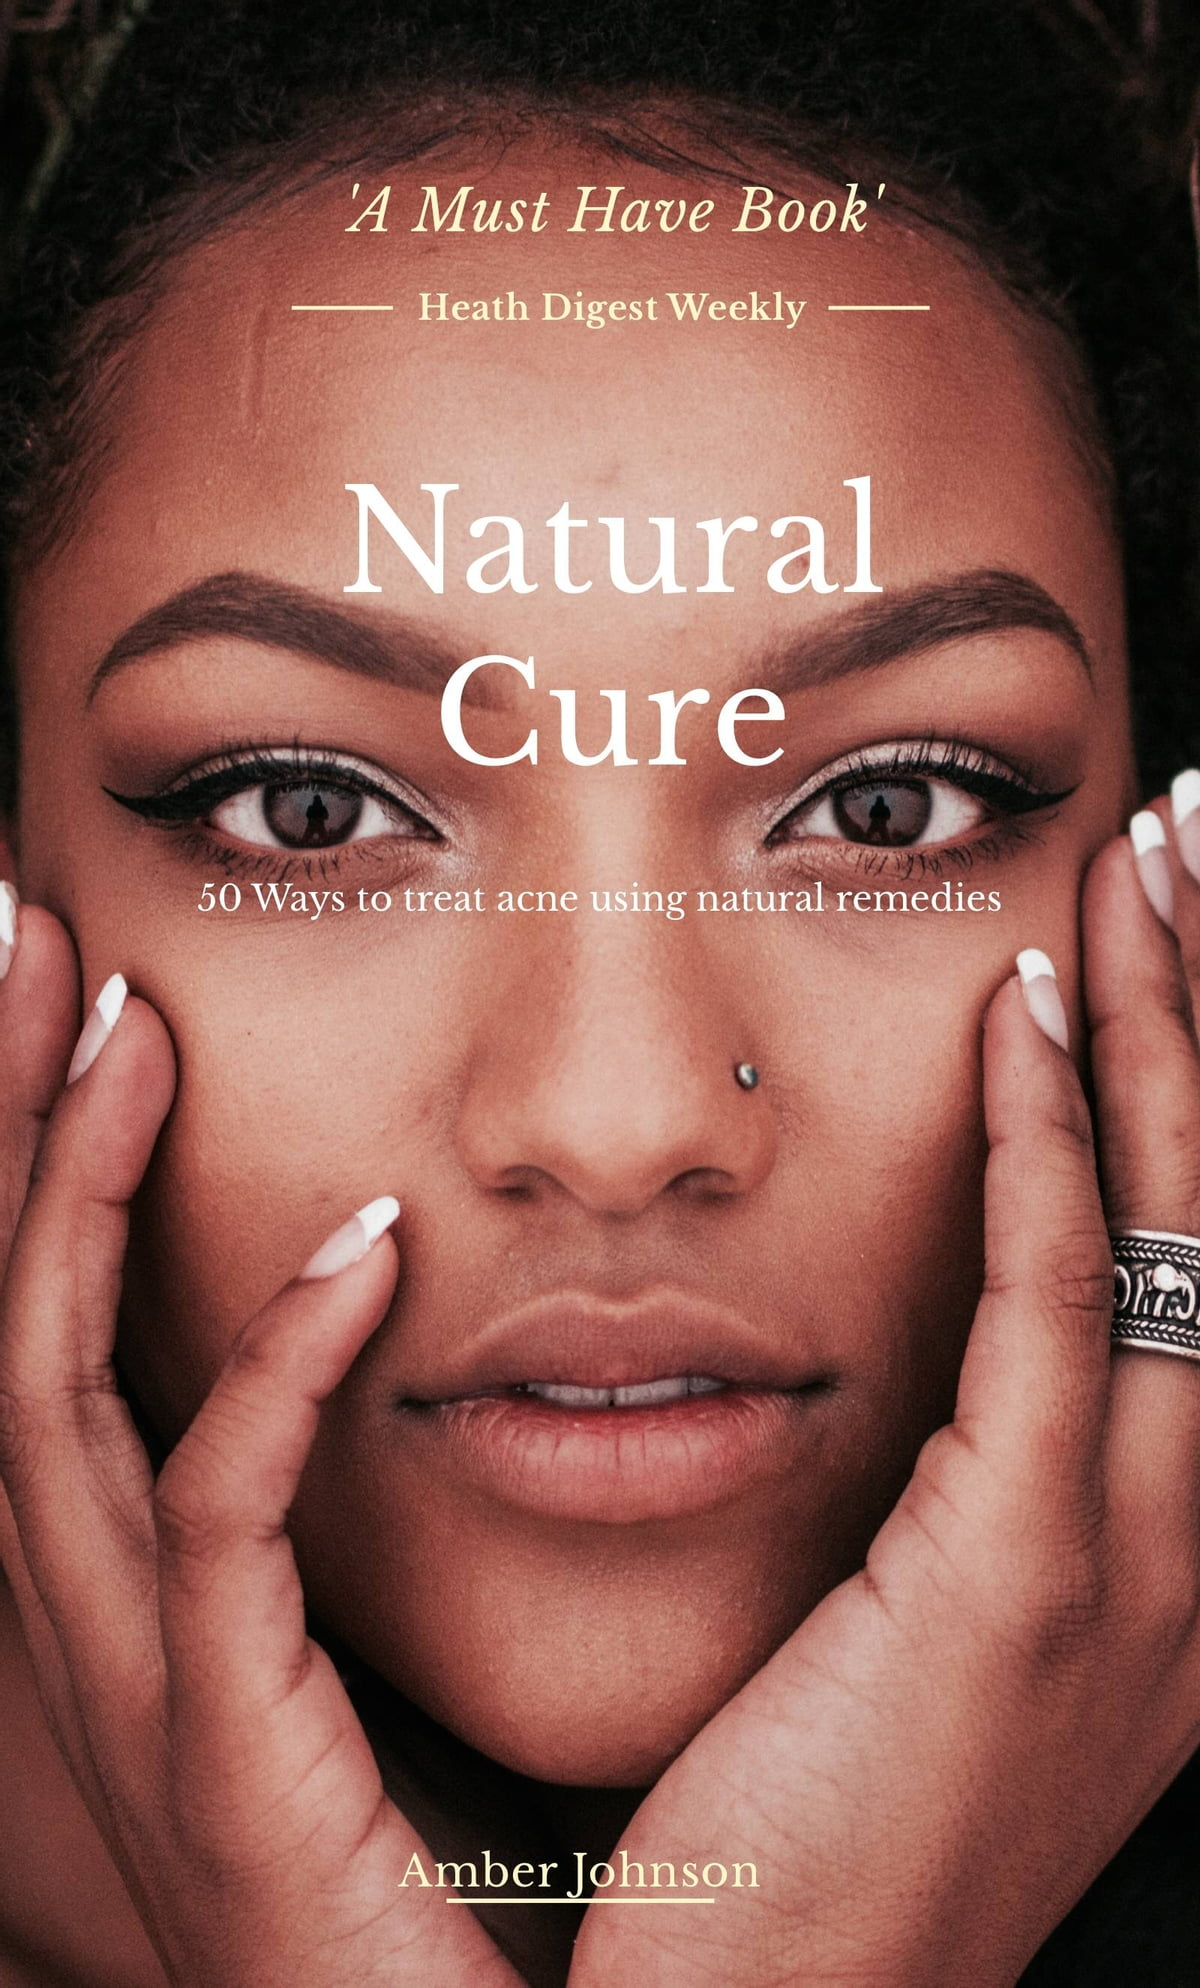 Natural Cure 50 Ways To Treat Acne Using Natural Remedies Ebook By Amber Johnson 9781495639272 Rakuten Kobo United States